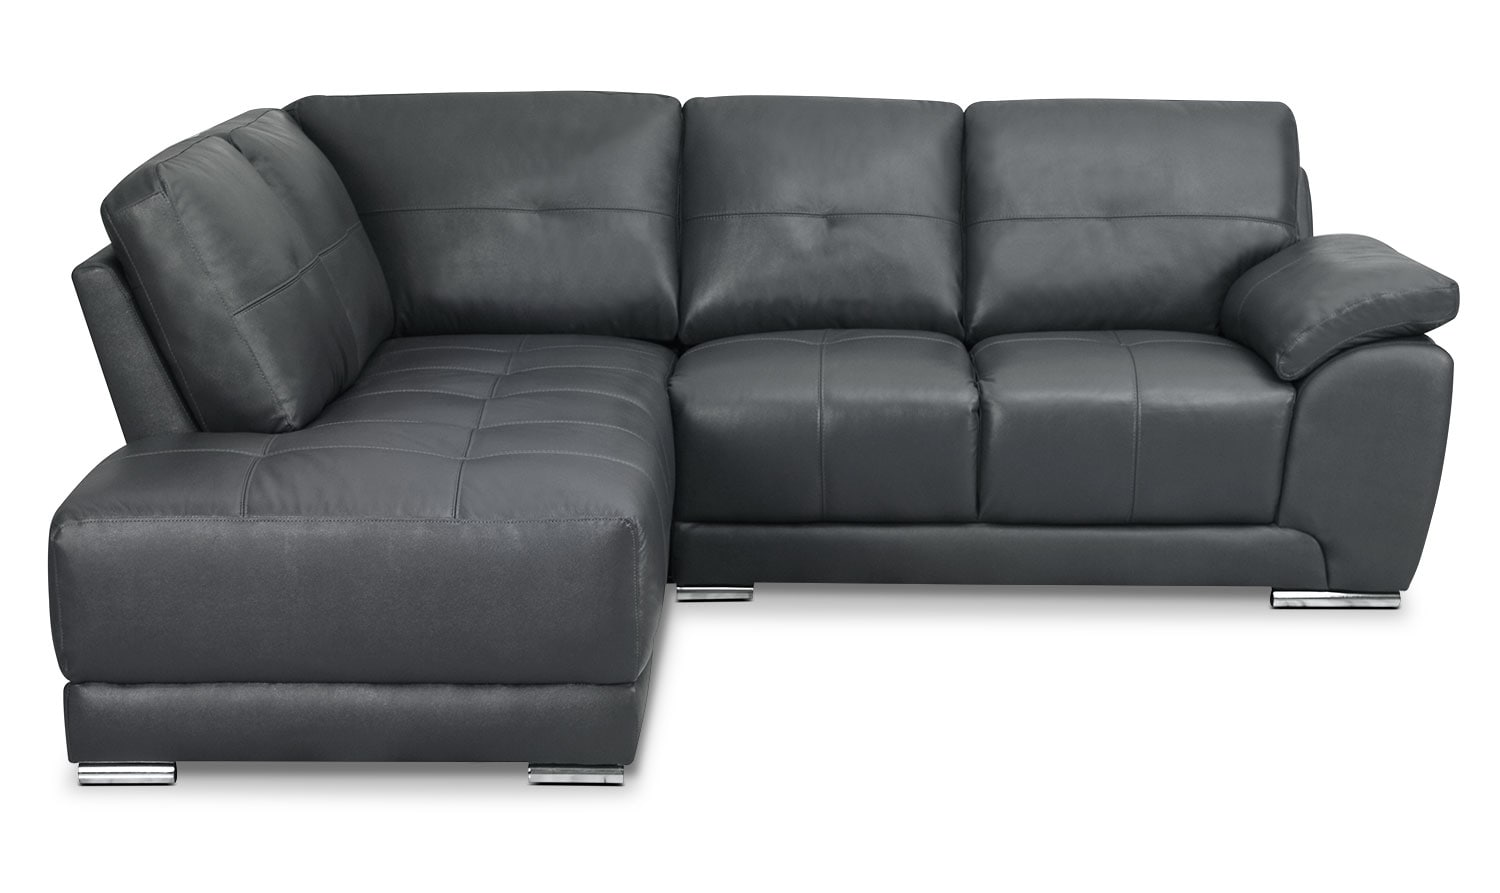 Living Room Furniture - Rylee 2-Piece Genuine Leather Left-Facing Sectional - Grey